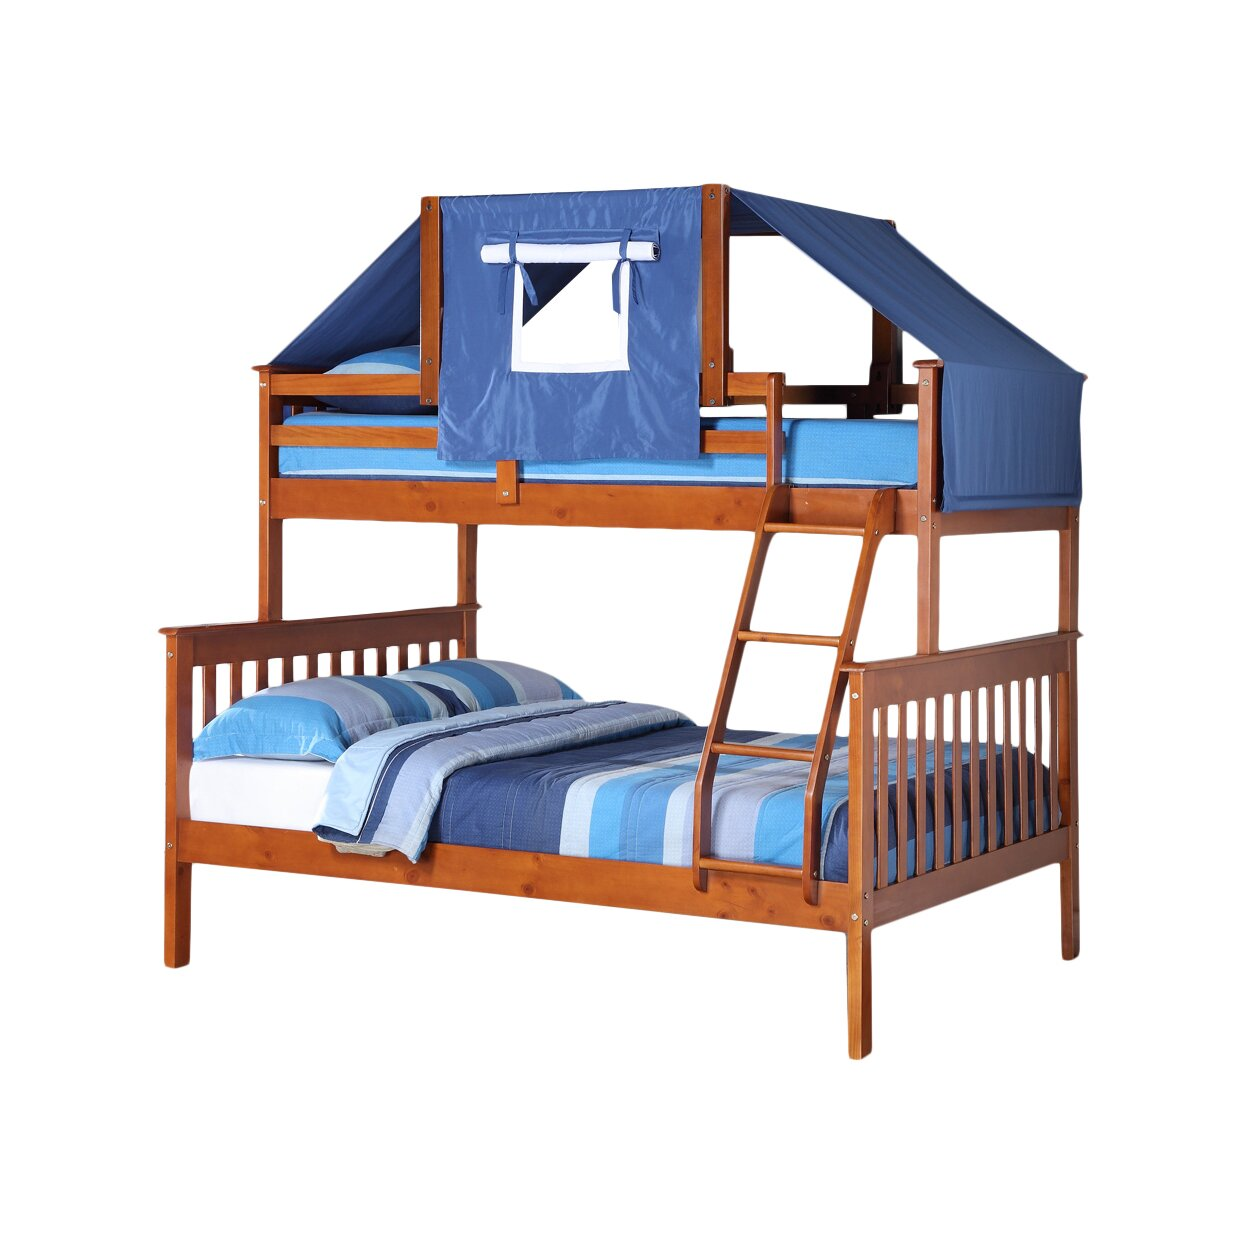 Donco Kids Twin over Full Futon Bunk Bed - Donco Kids Donco Kids Twin Over Full Futon Bunk Bed & Reviews